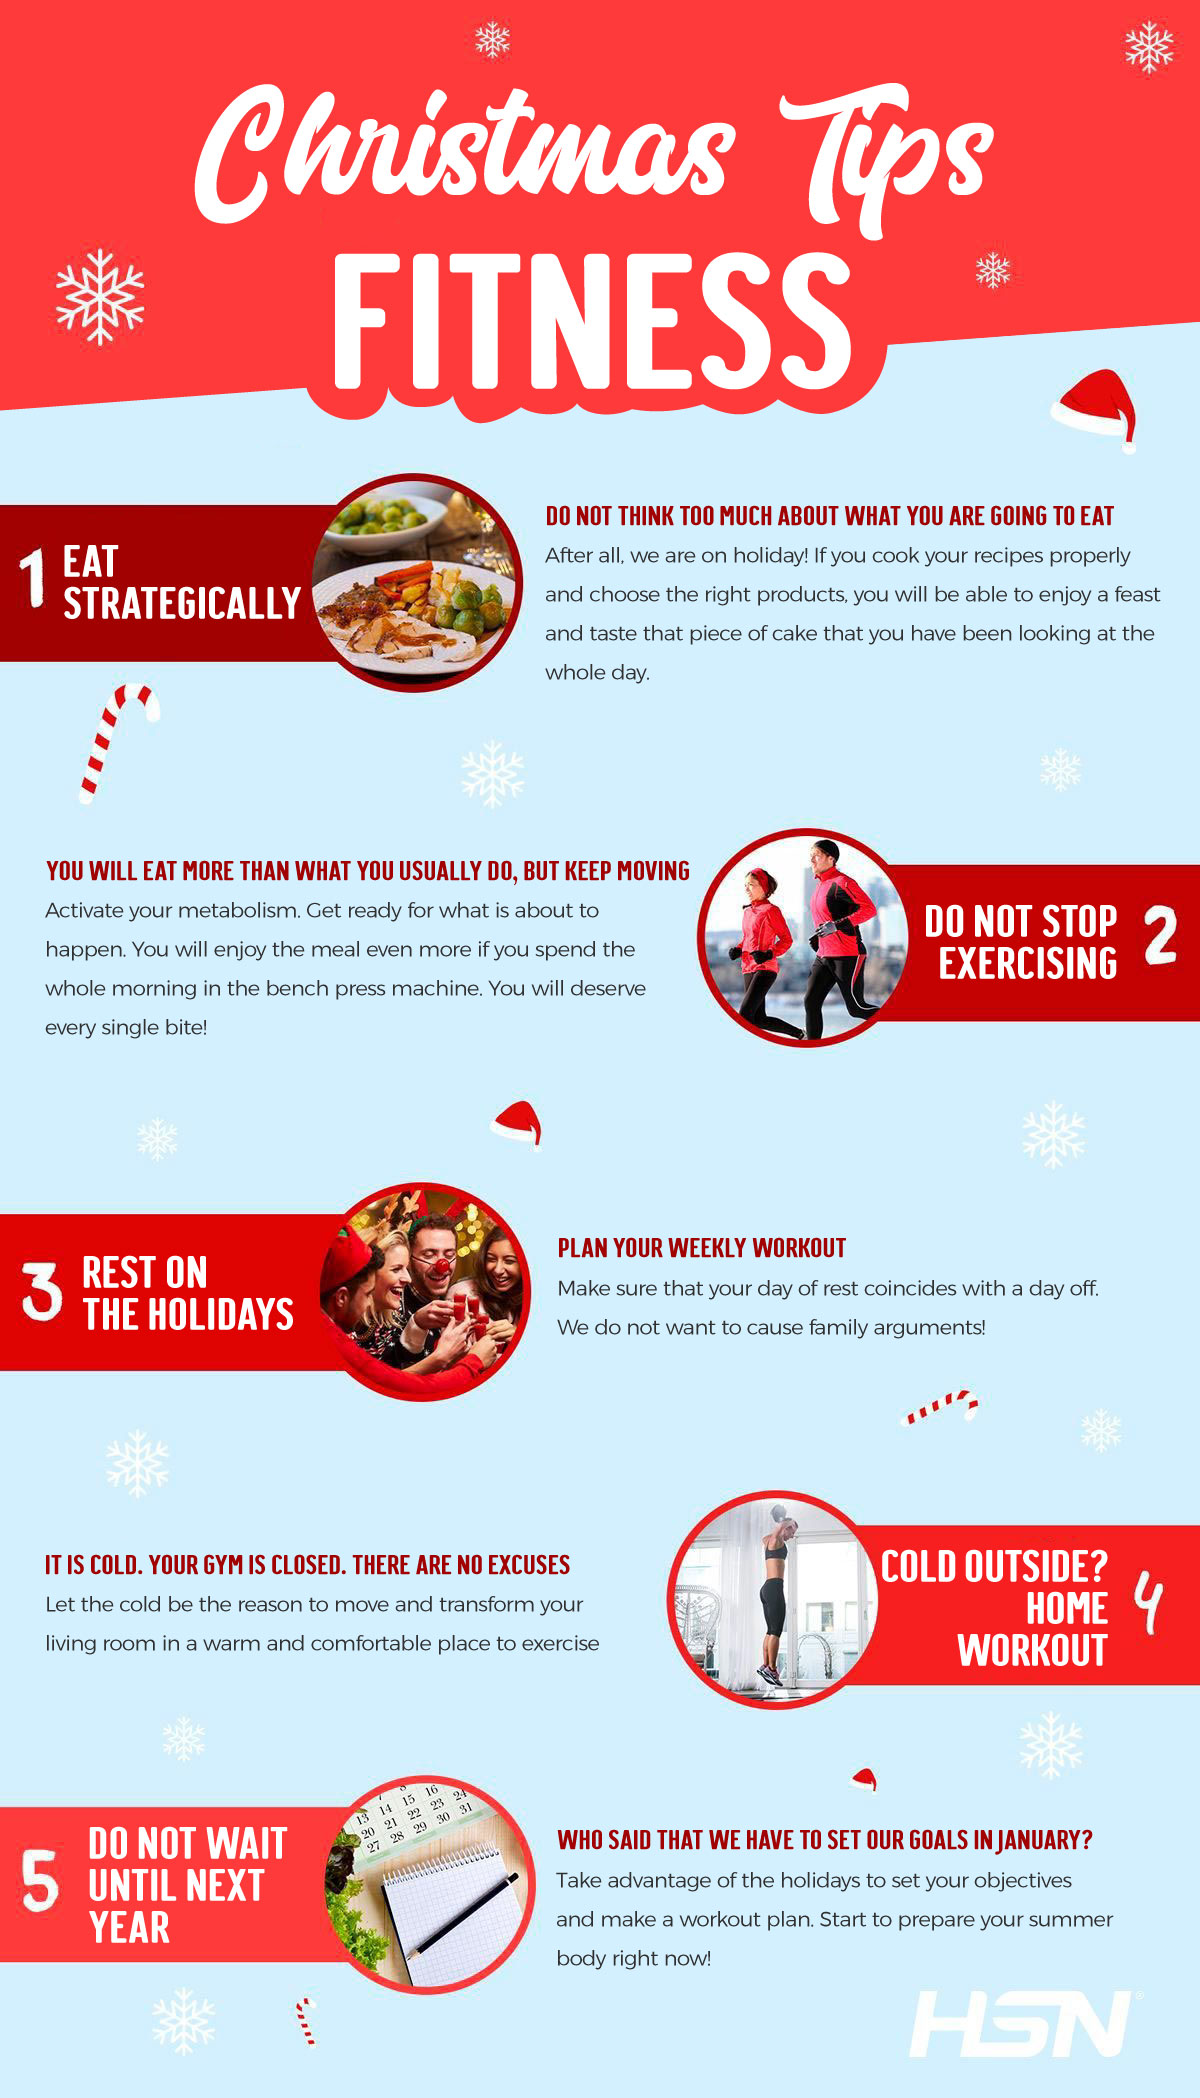 Tips for a Fitness Christmas